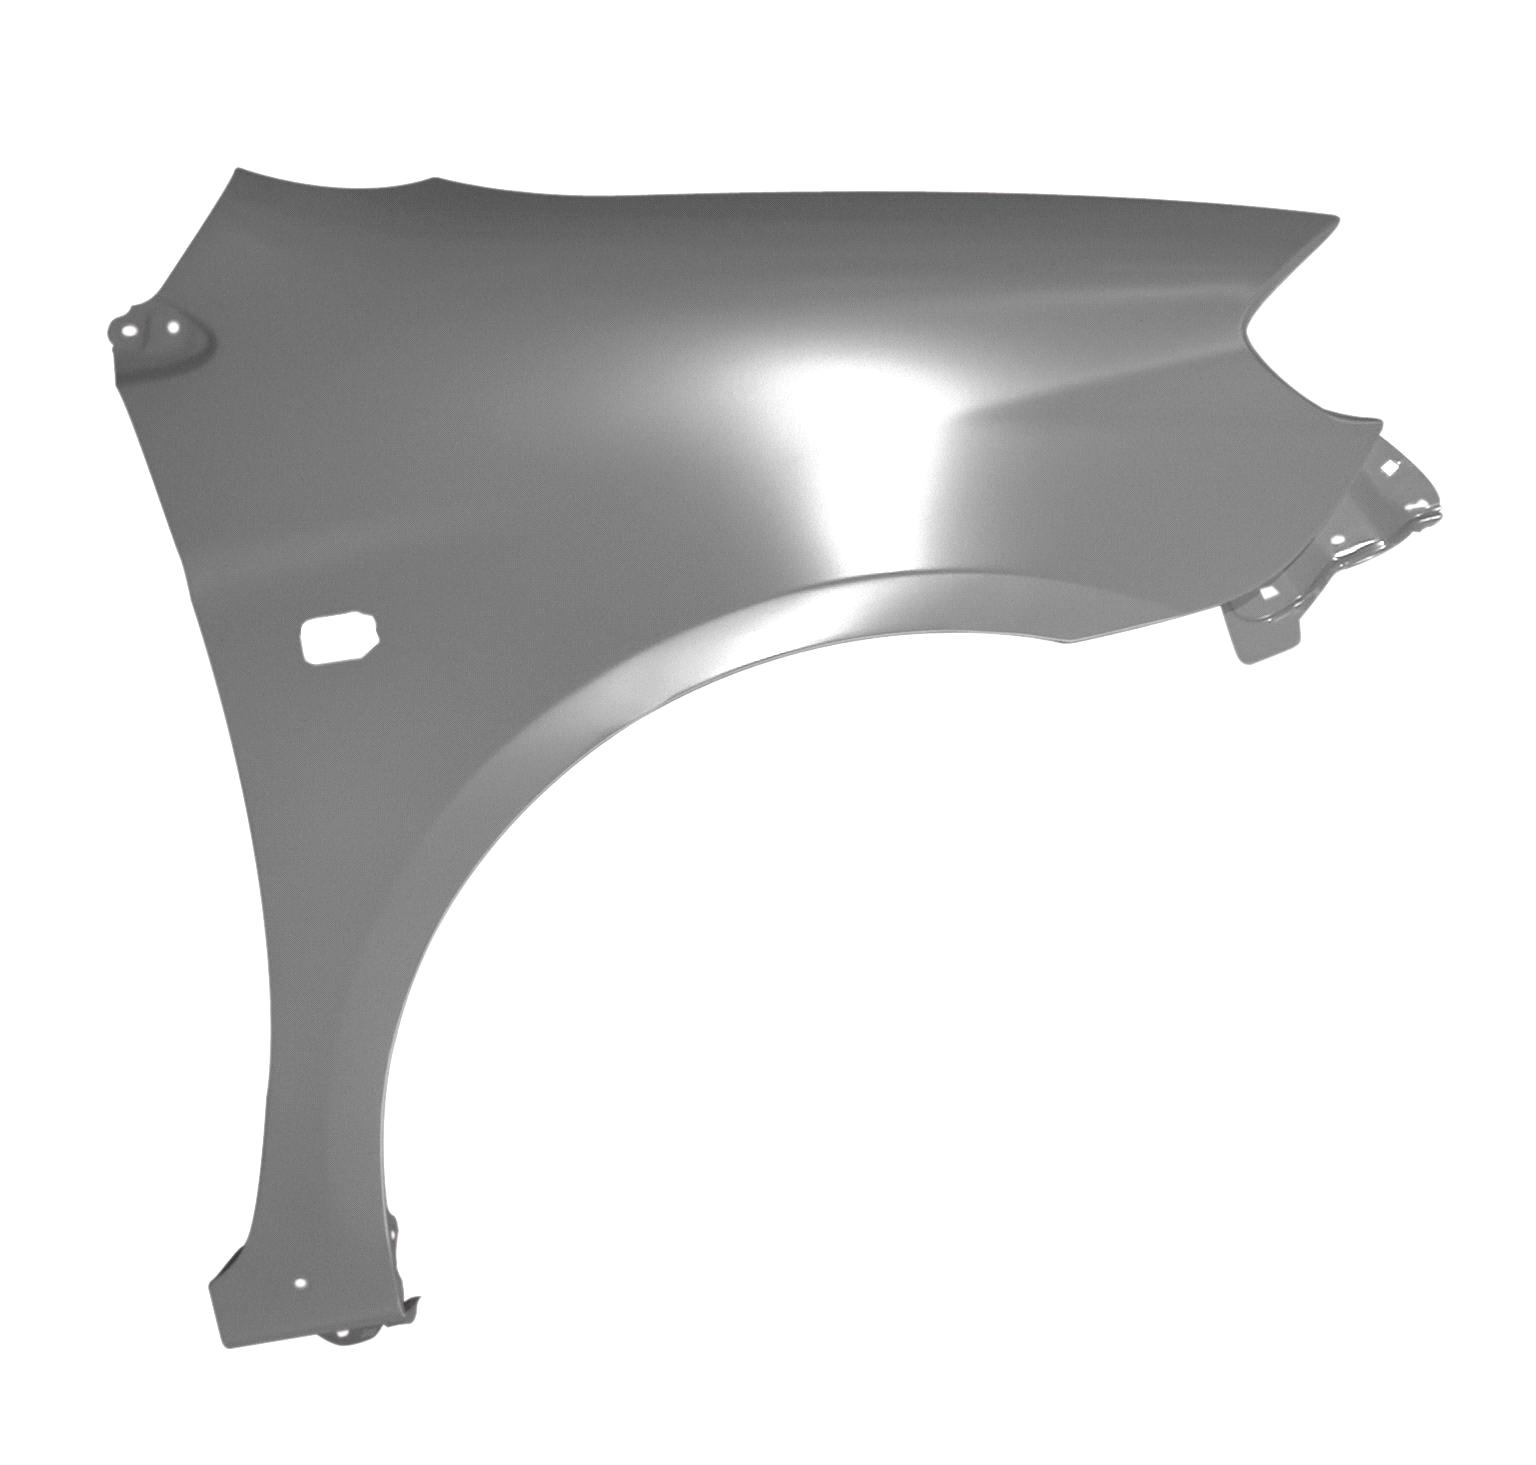 Toyota Replacement Body Parts: Auto Body Parts Fender For Toyota Vios Purchasing, Souring